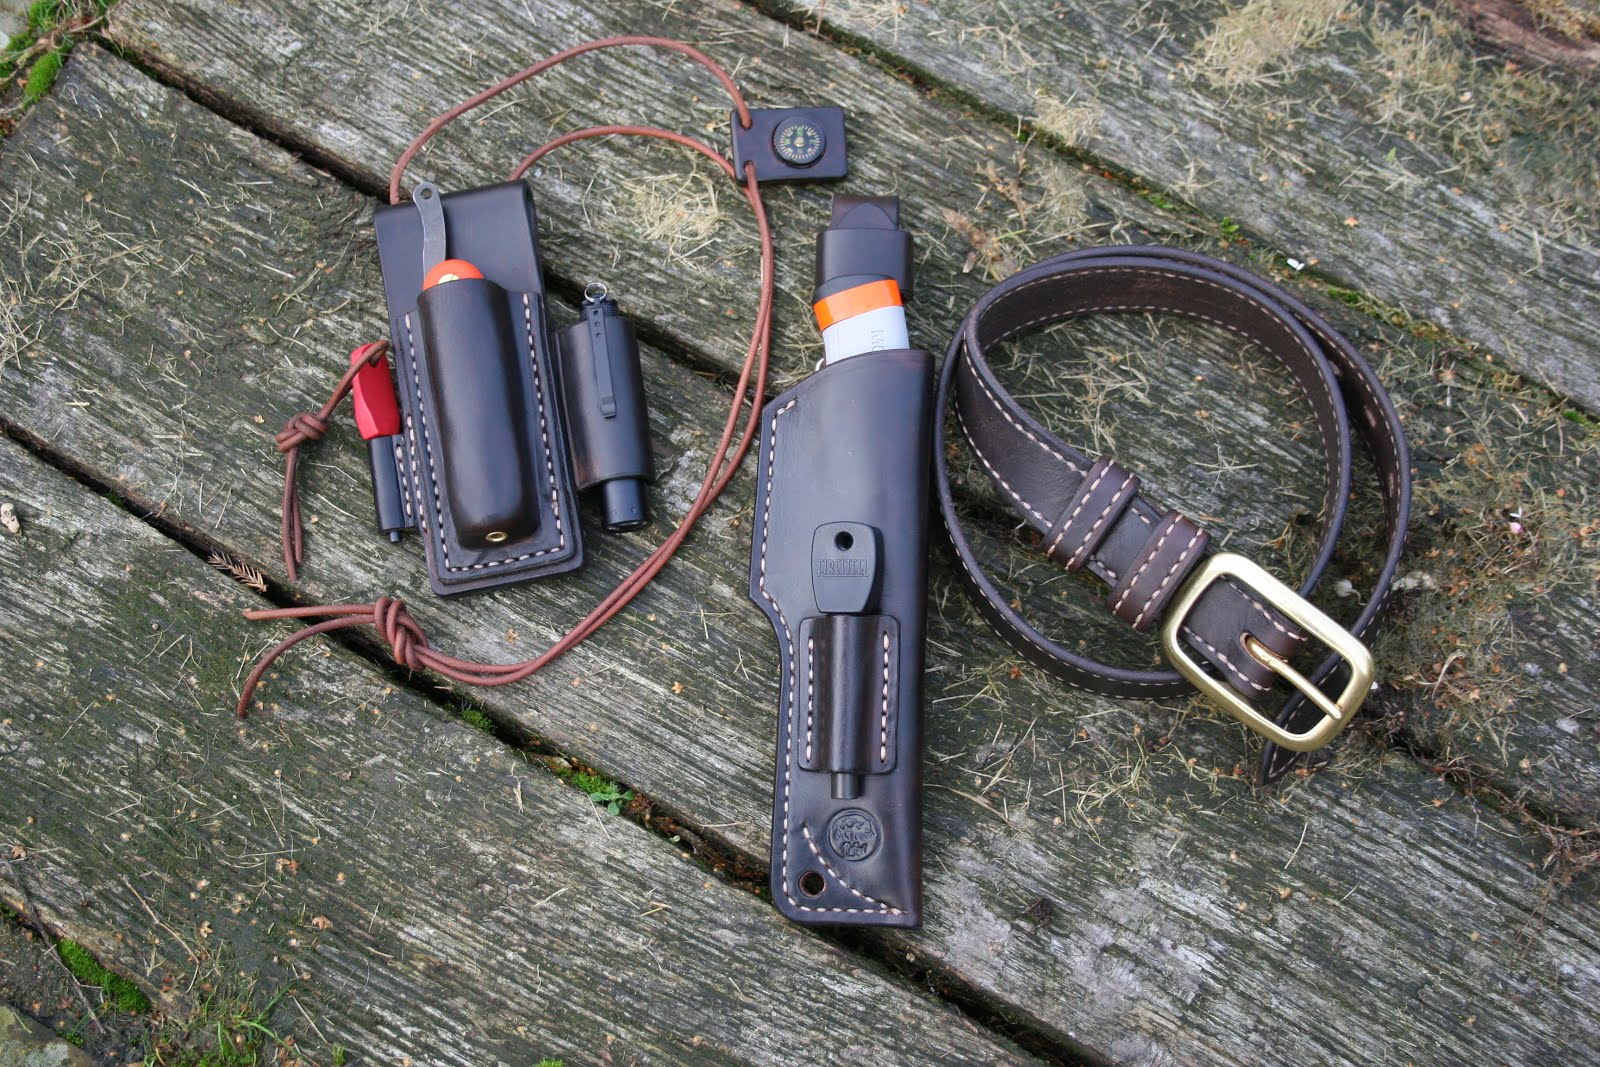 Survival kit including Mora knife and sheath belt and neck kit